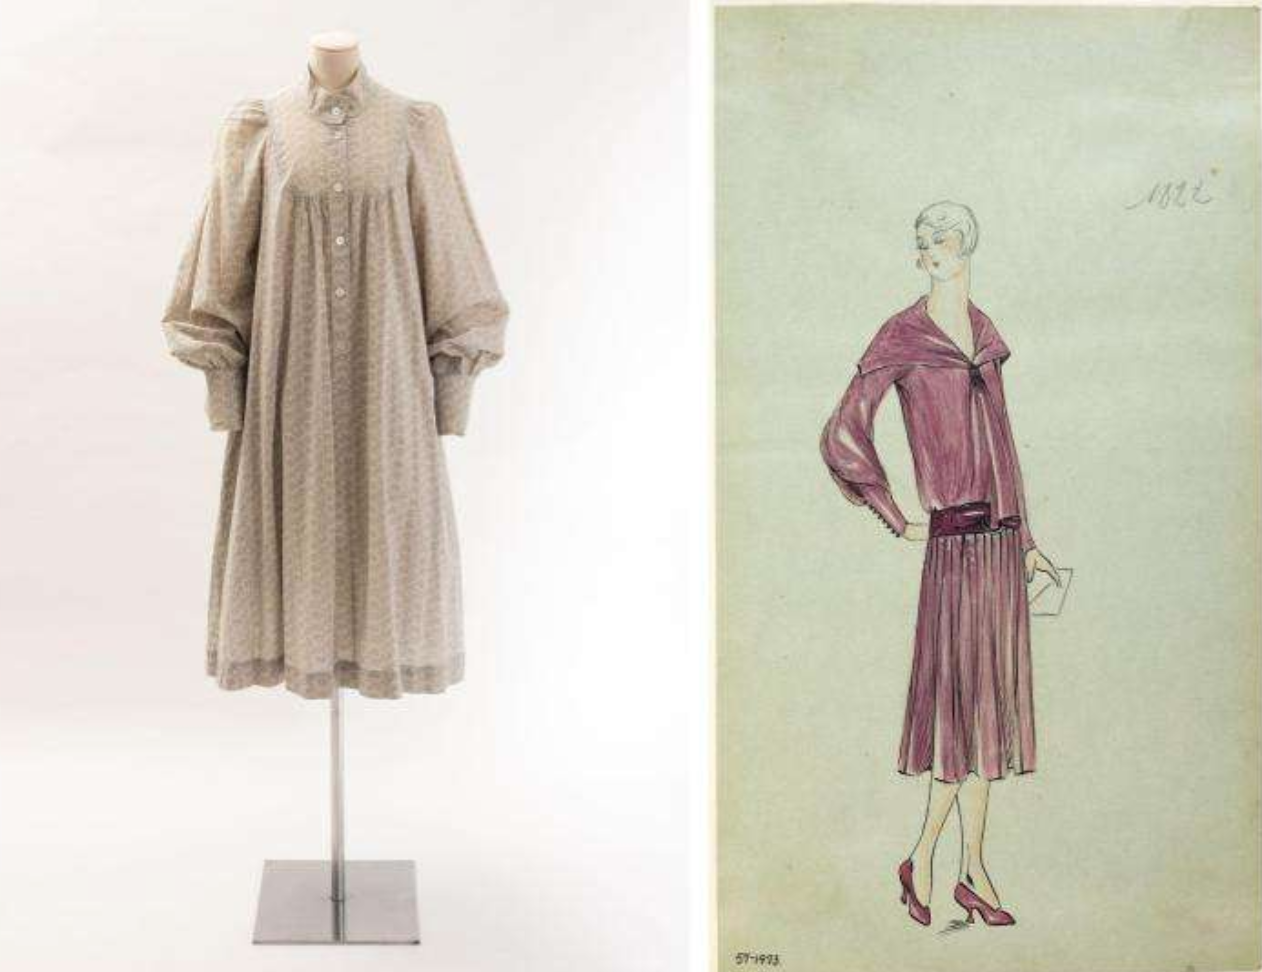 Images of Dresses from the Berg Fashion LIbrary